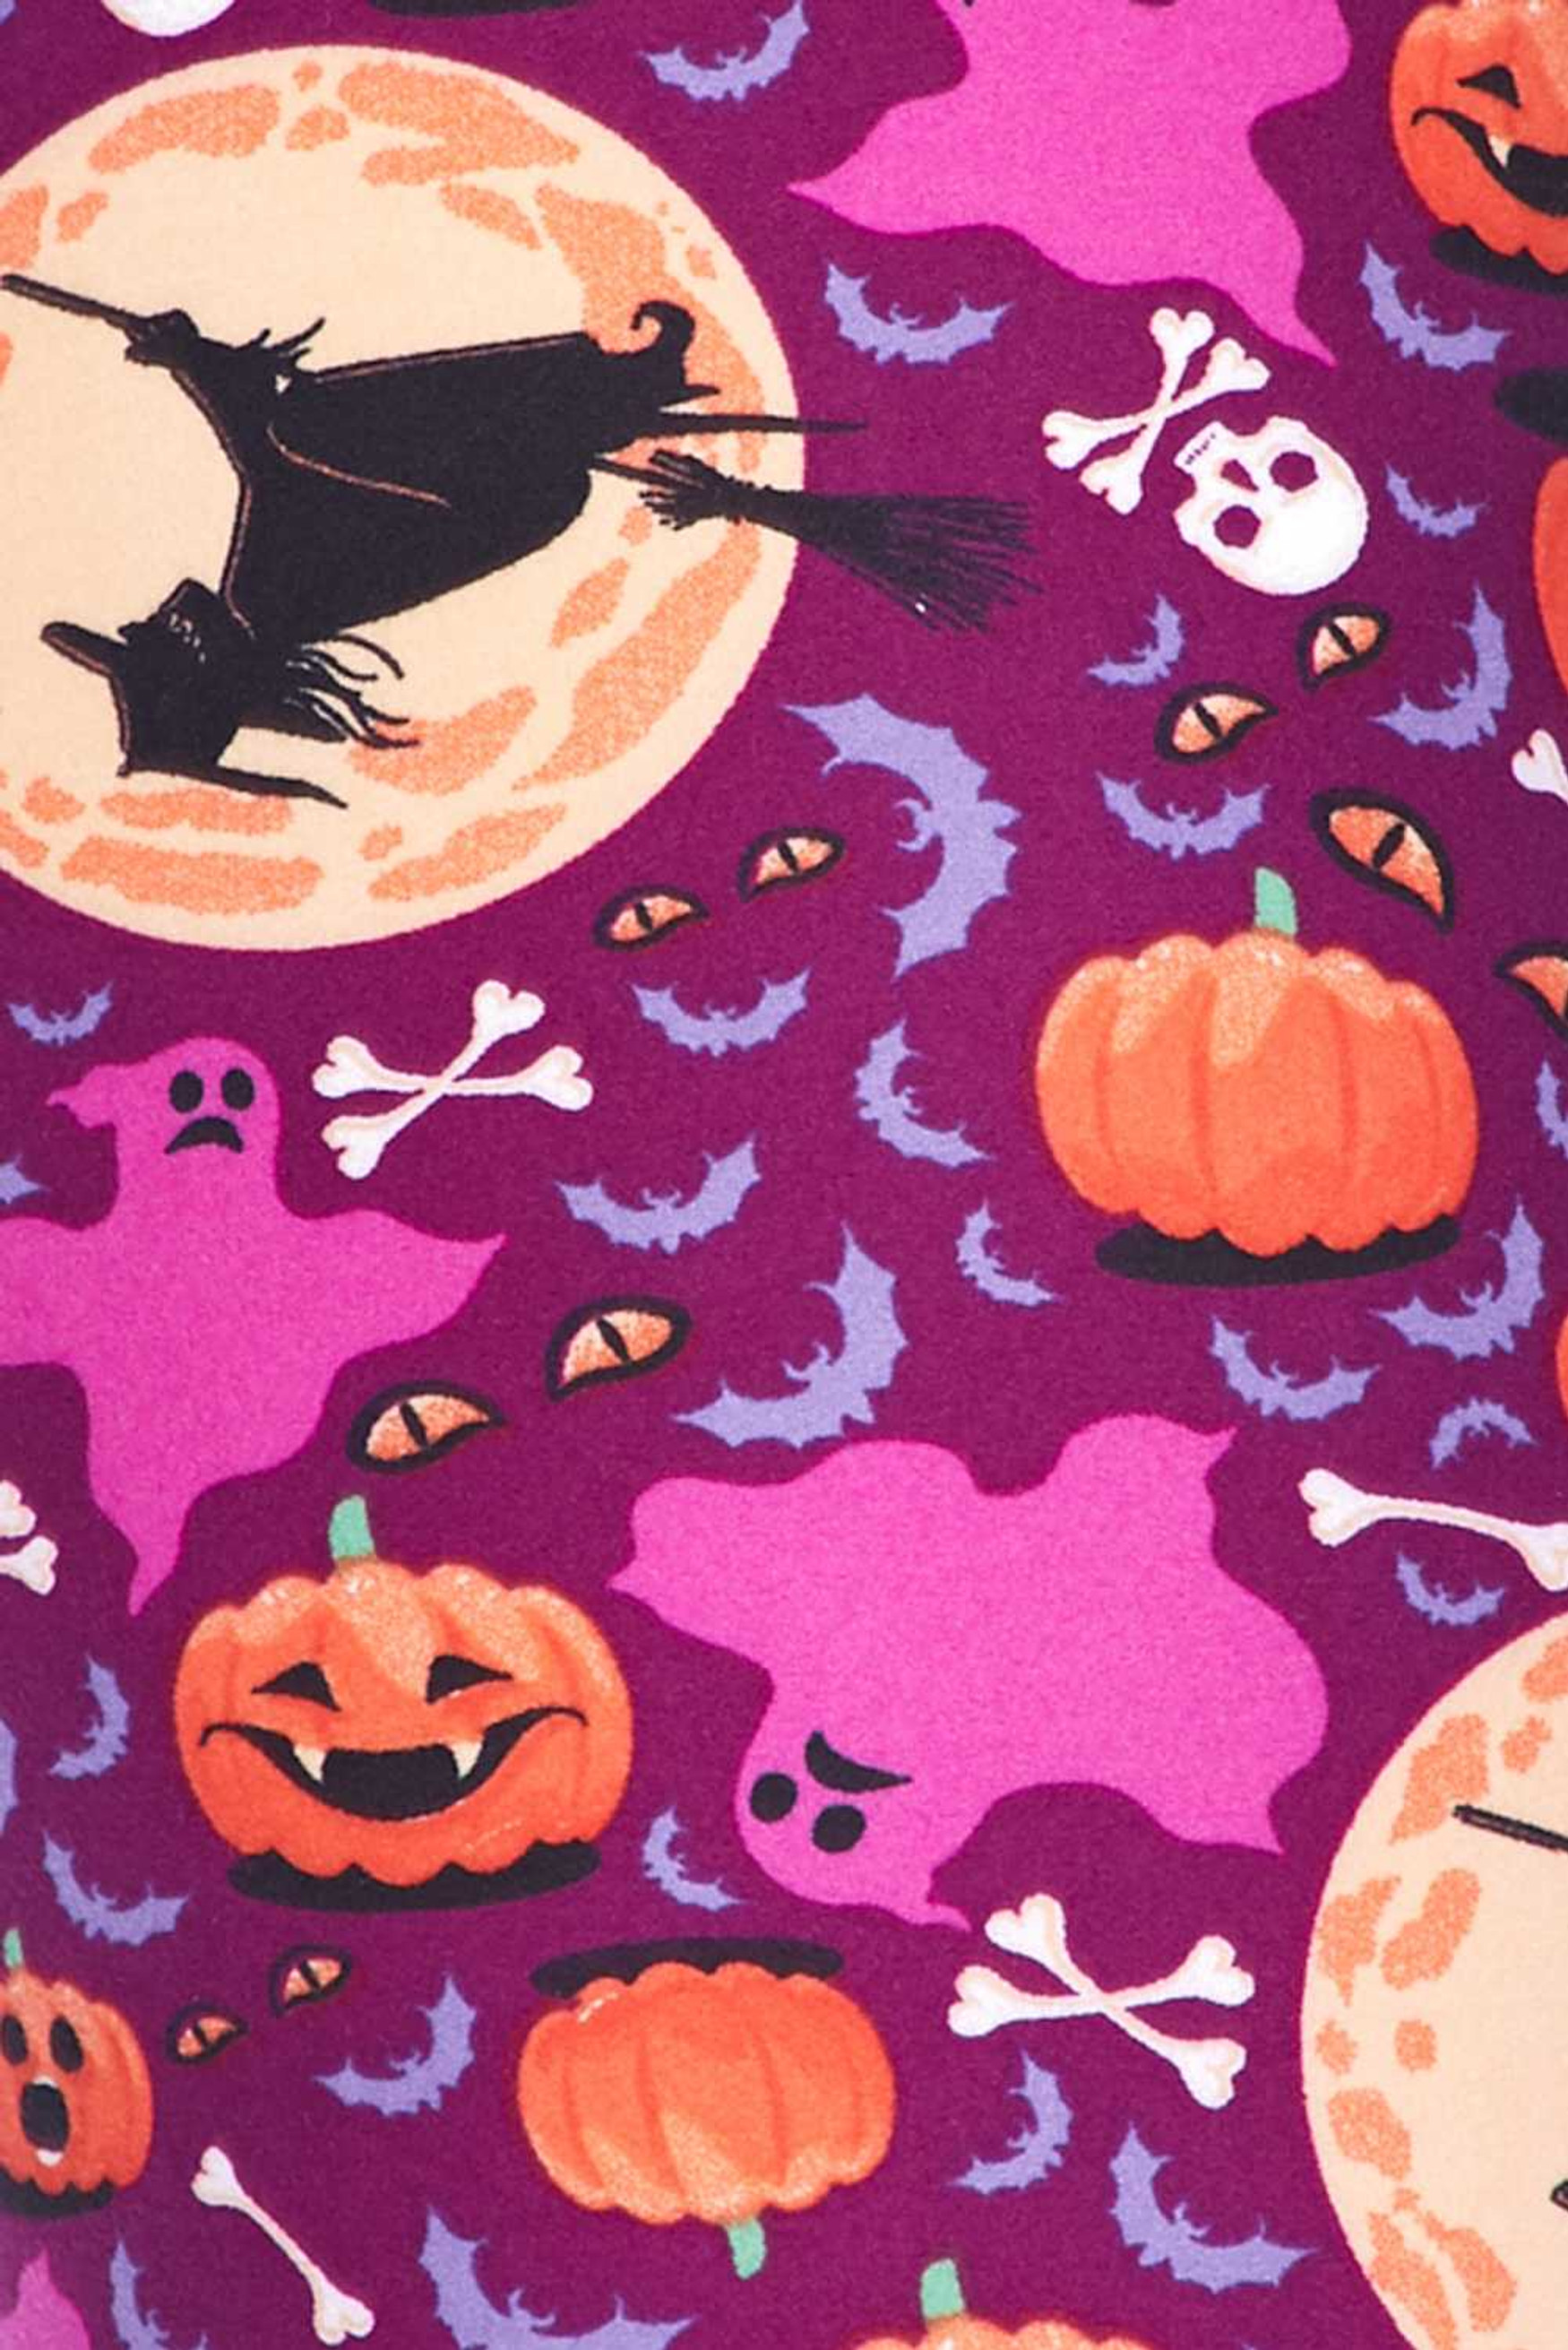 Buttery Soft Wicked Witches Plus Size Leggings